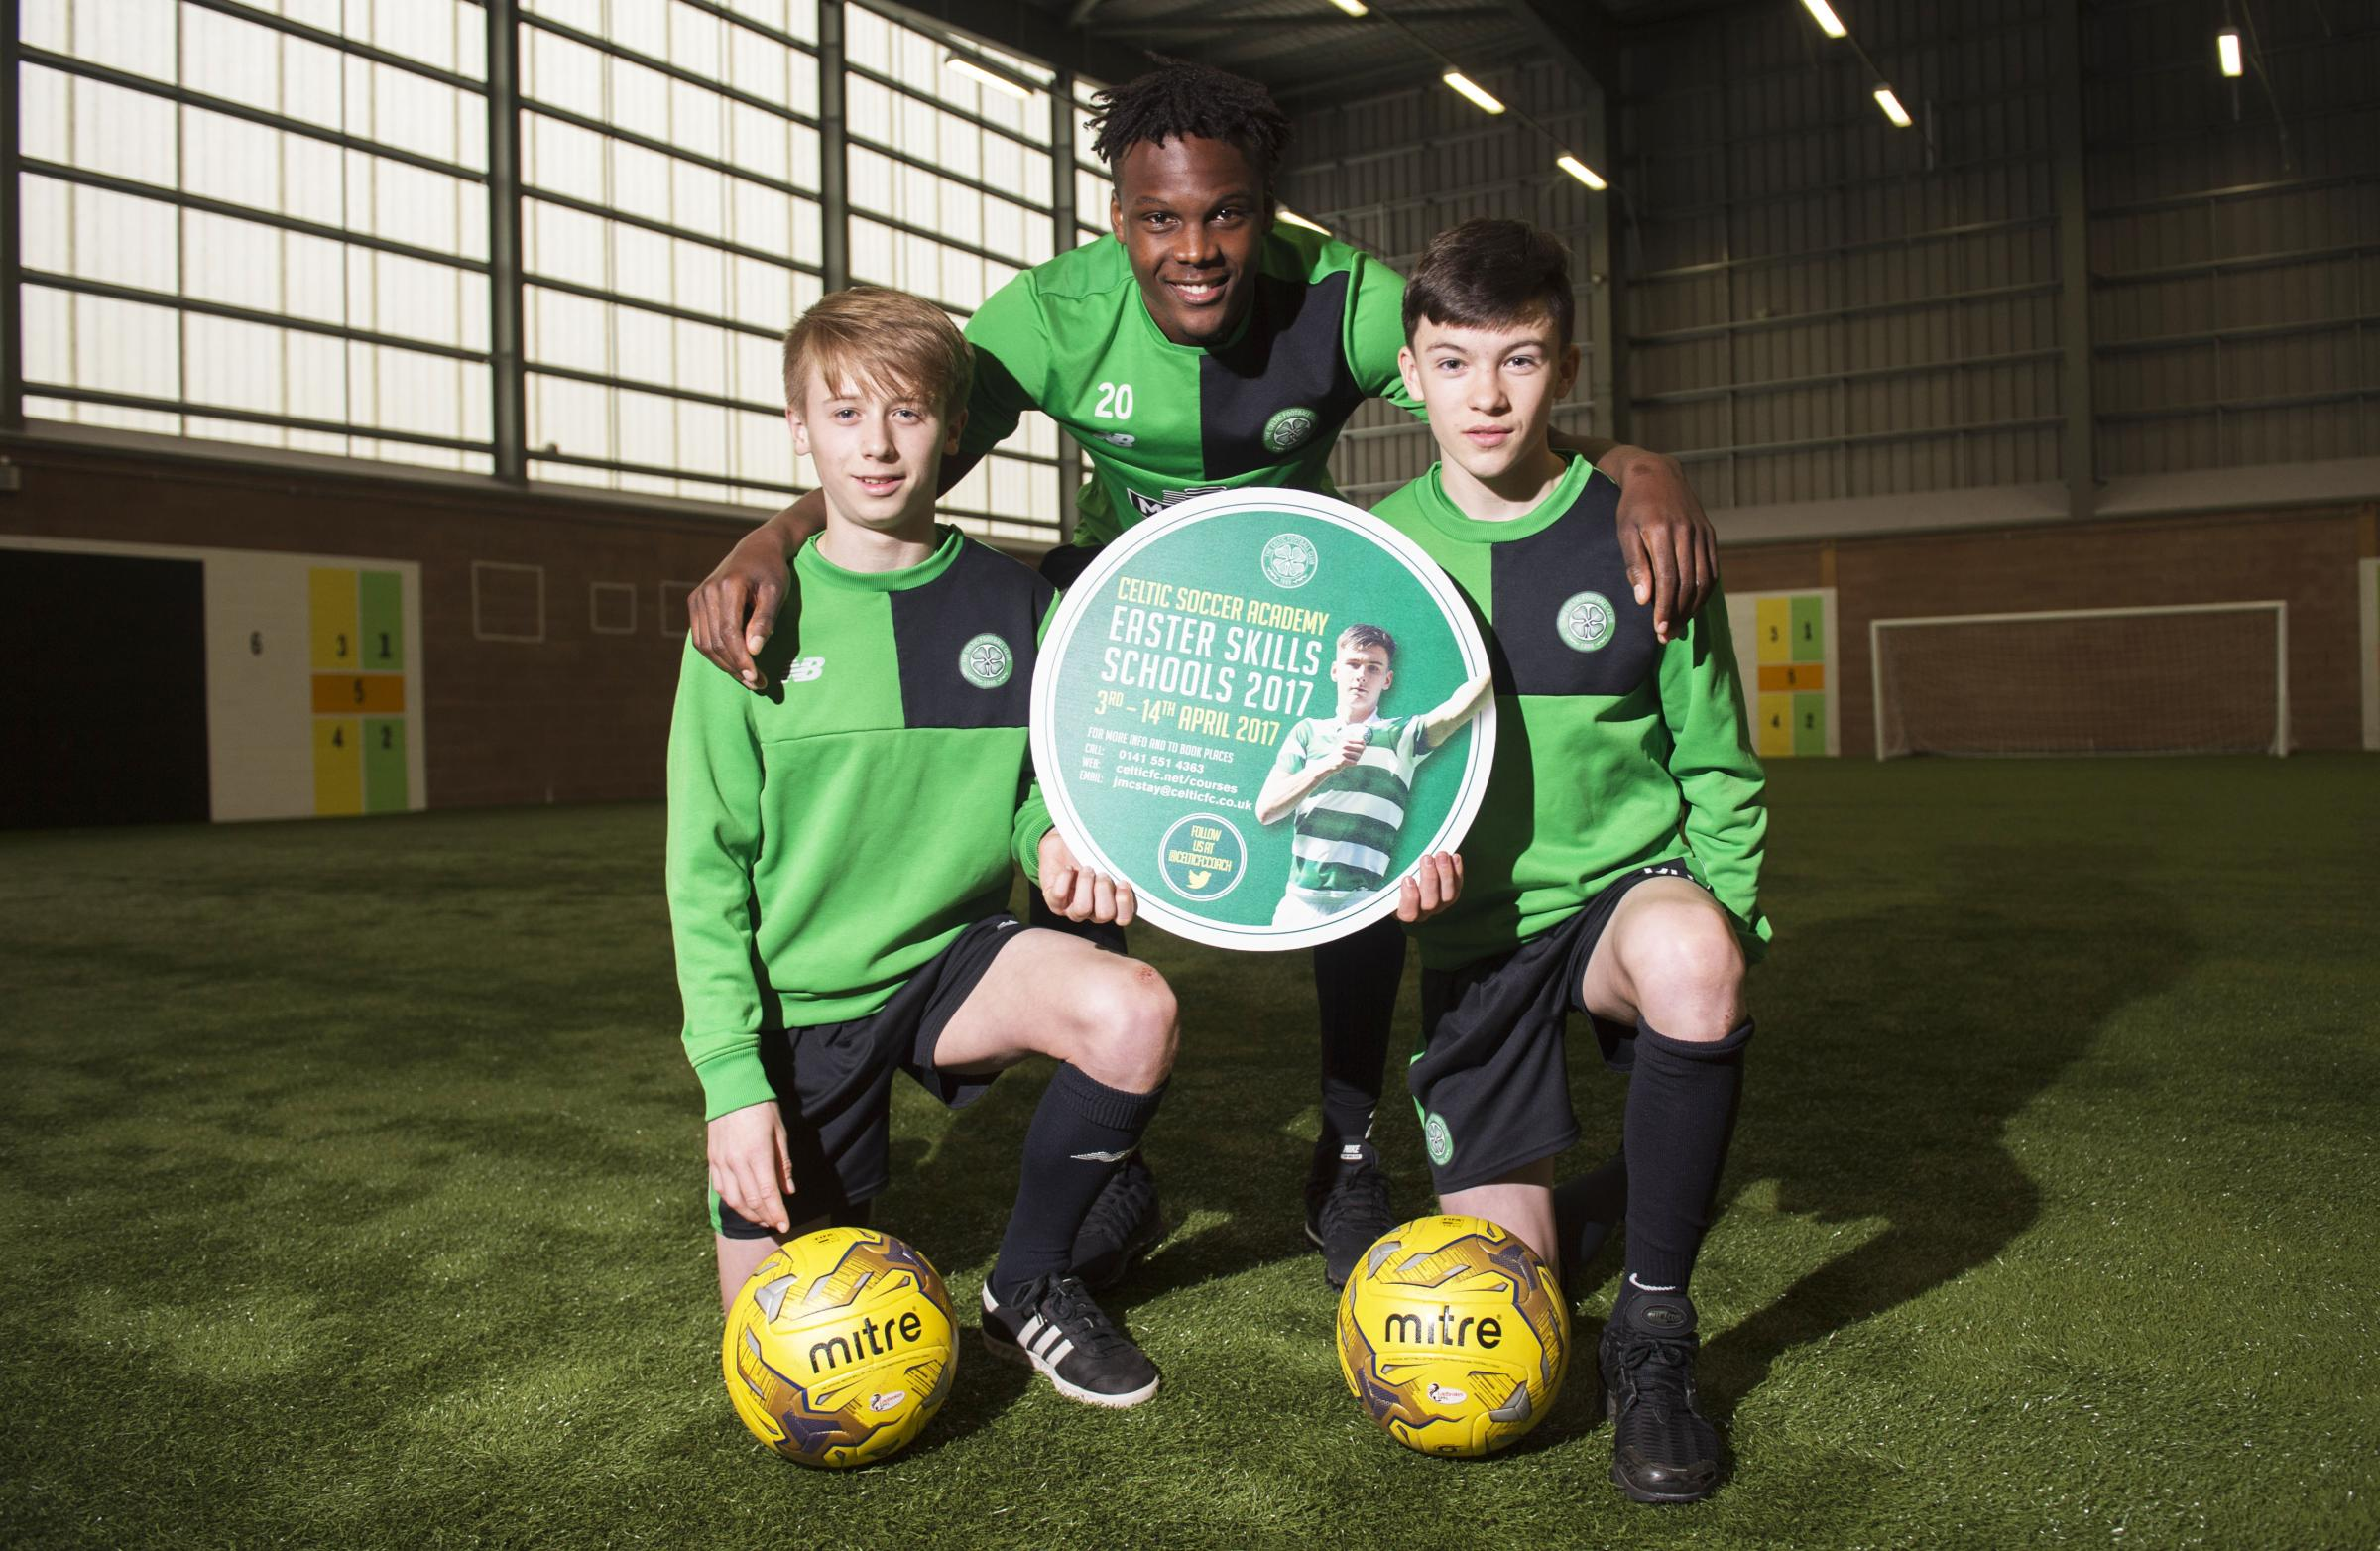 Dedryck Boyata hoping that squaring up to Thierry Henry with Belgium will help Celtic's bid to become Invincibles